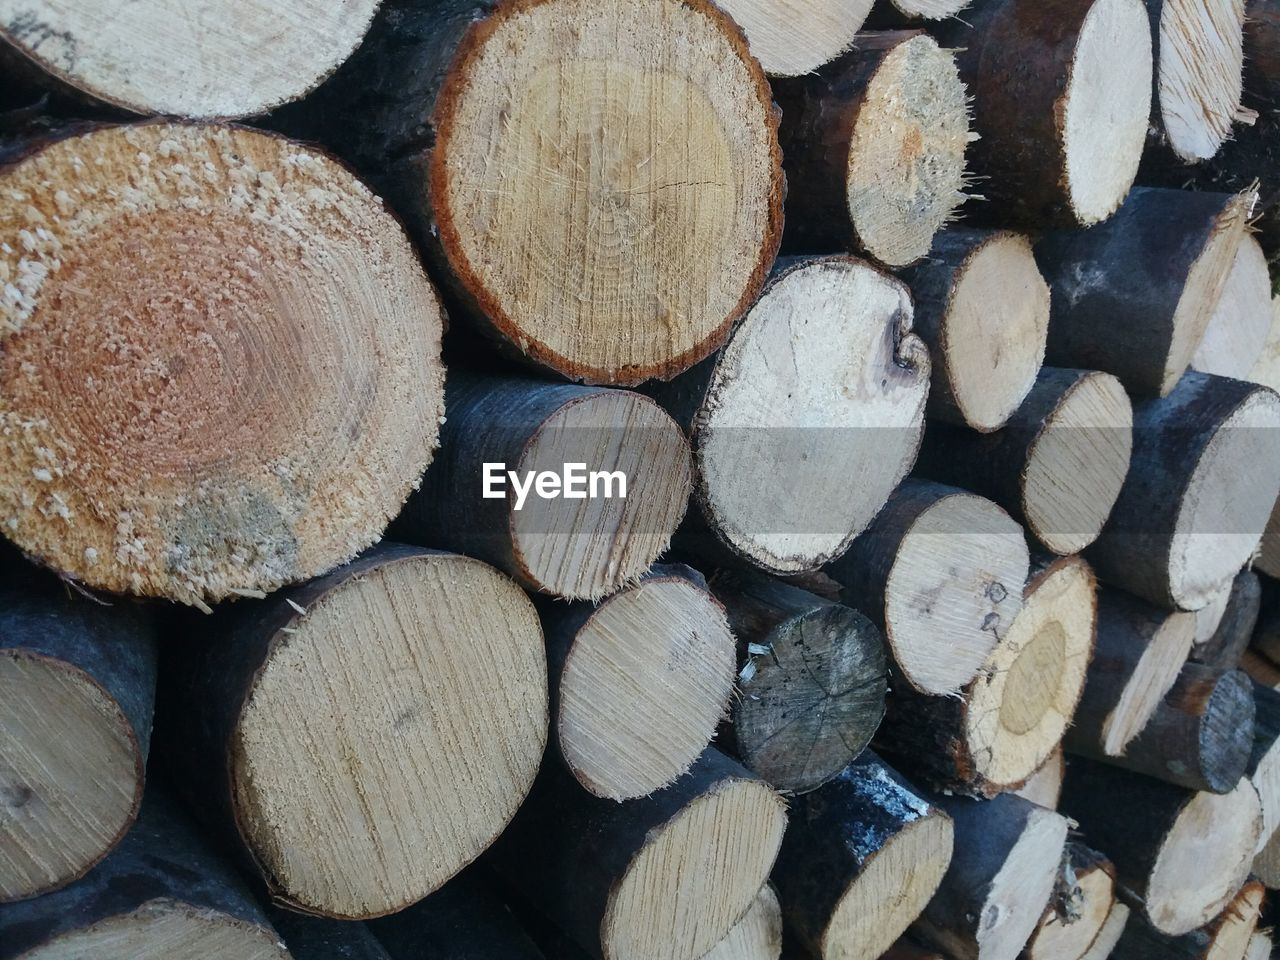 timber, firewood, woodpile, log, stack, forestry industry, wood, heap, backgrounds, repetition, full frame, shape, wood - material, textured, fuel and power generation, abundance, lumber industry, large group of objects, deforestation, close-up, no people, day, outdoors